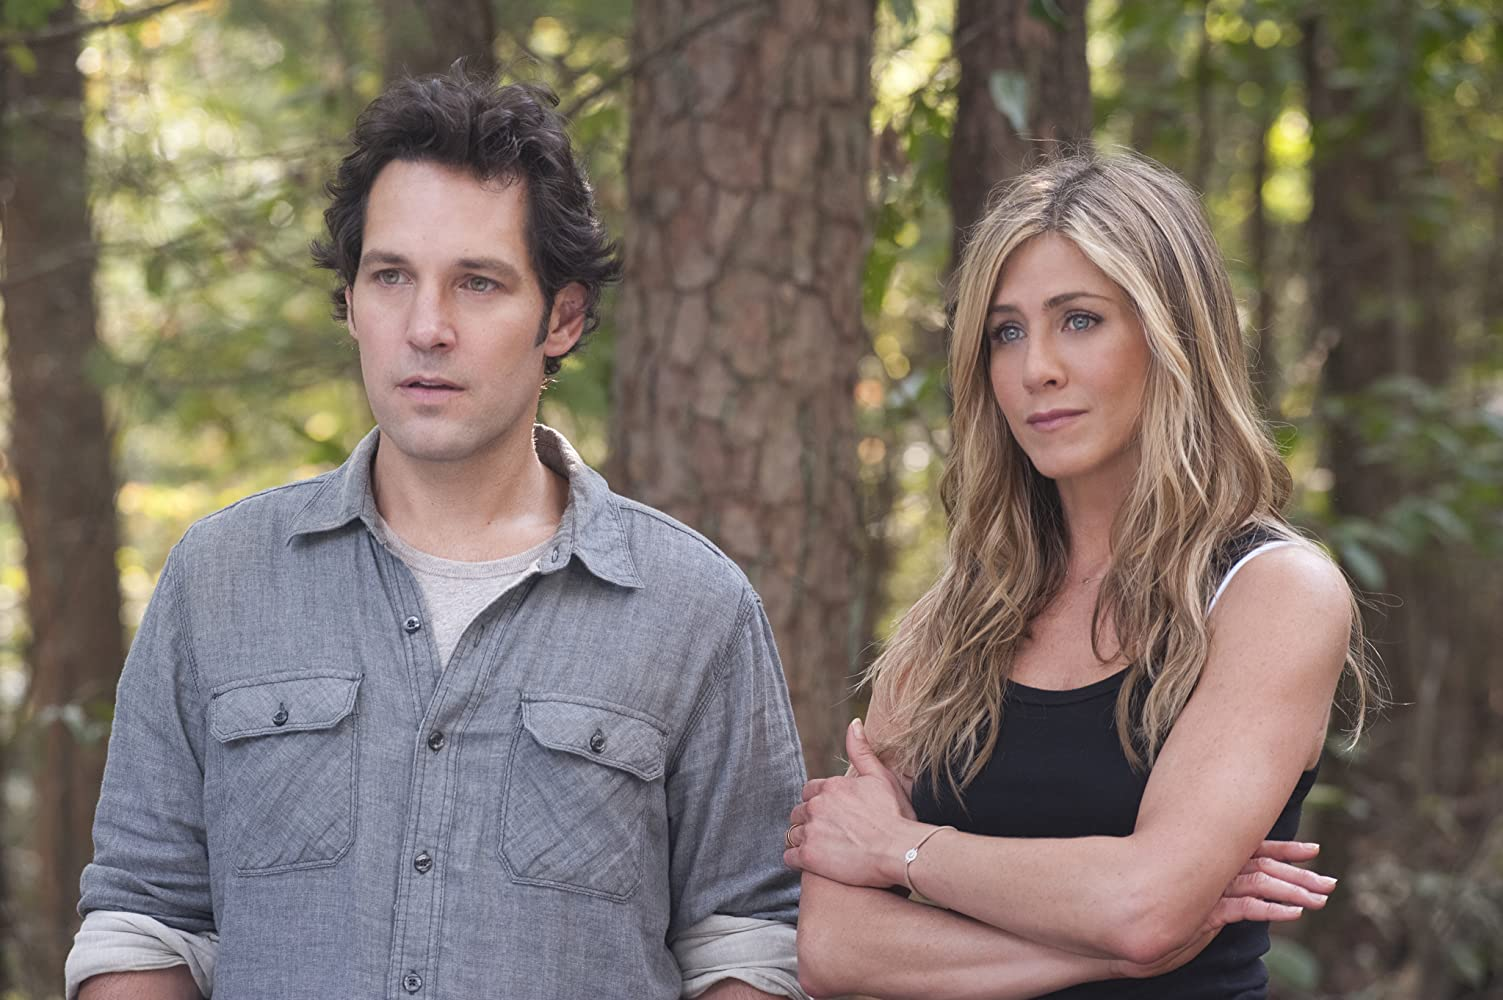 Jennifer Aniston and Paul Rudd in Wanderlust (2012)